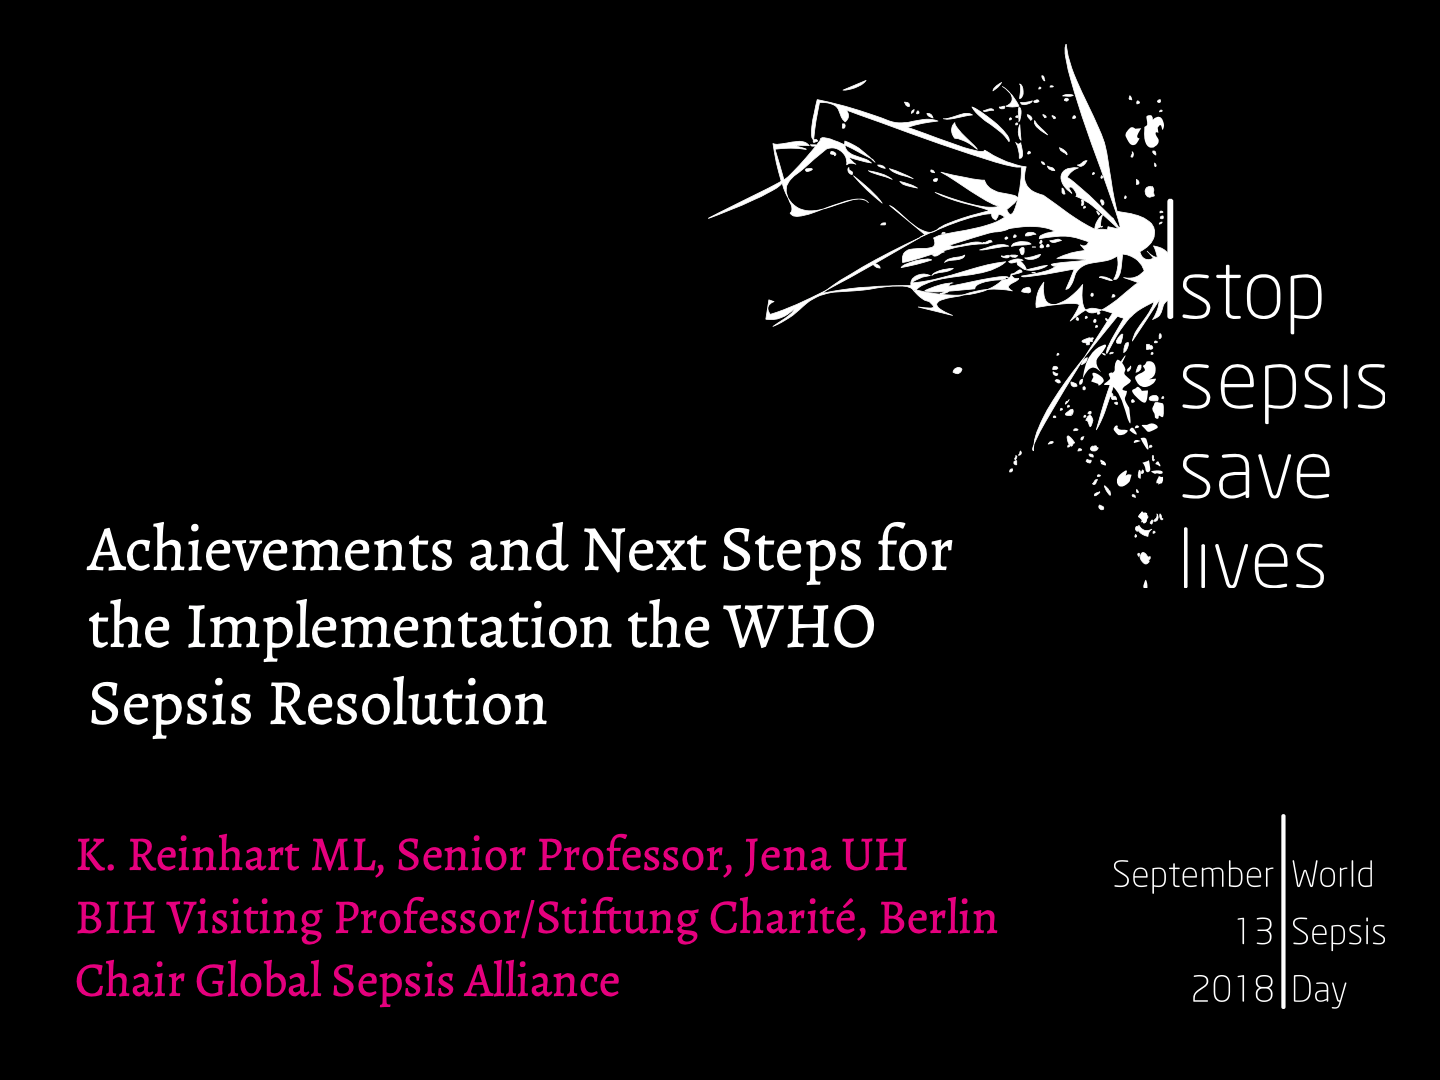 Strategy of the GSA to Implement WHO Sepsis Resolution1.png